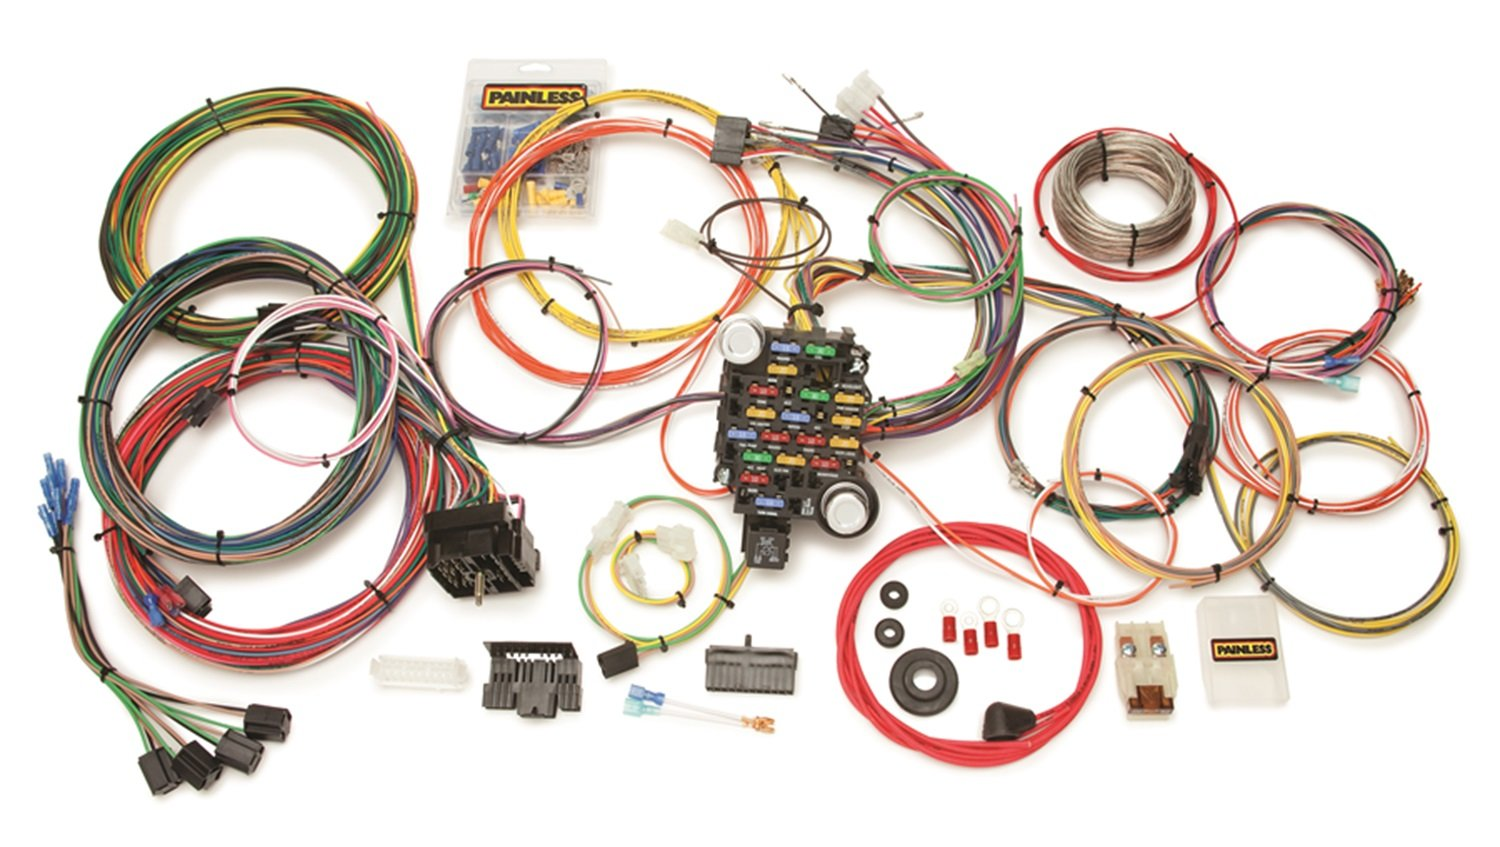 Painless 10205 18 Circuit Wiring System Automotive Bulkhead Schematic 1970 Chevrolet C10